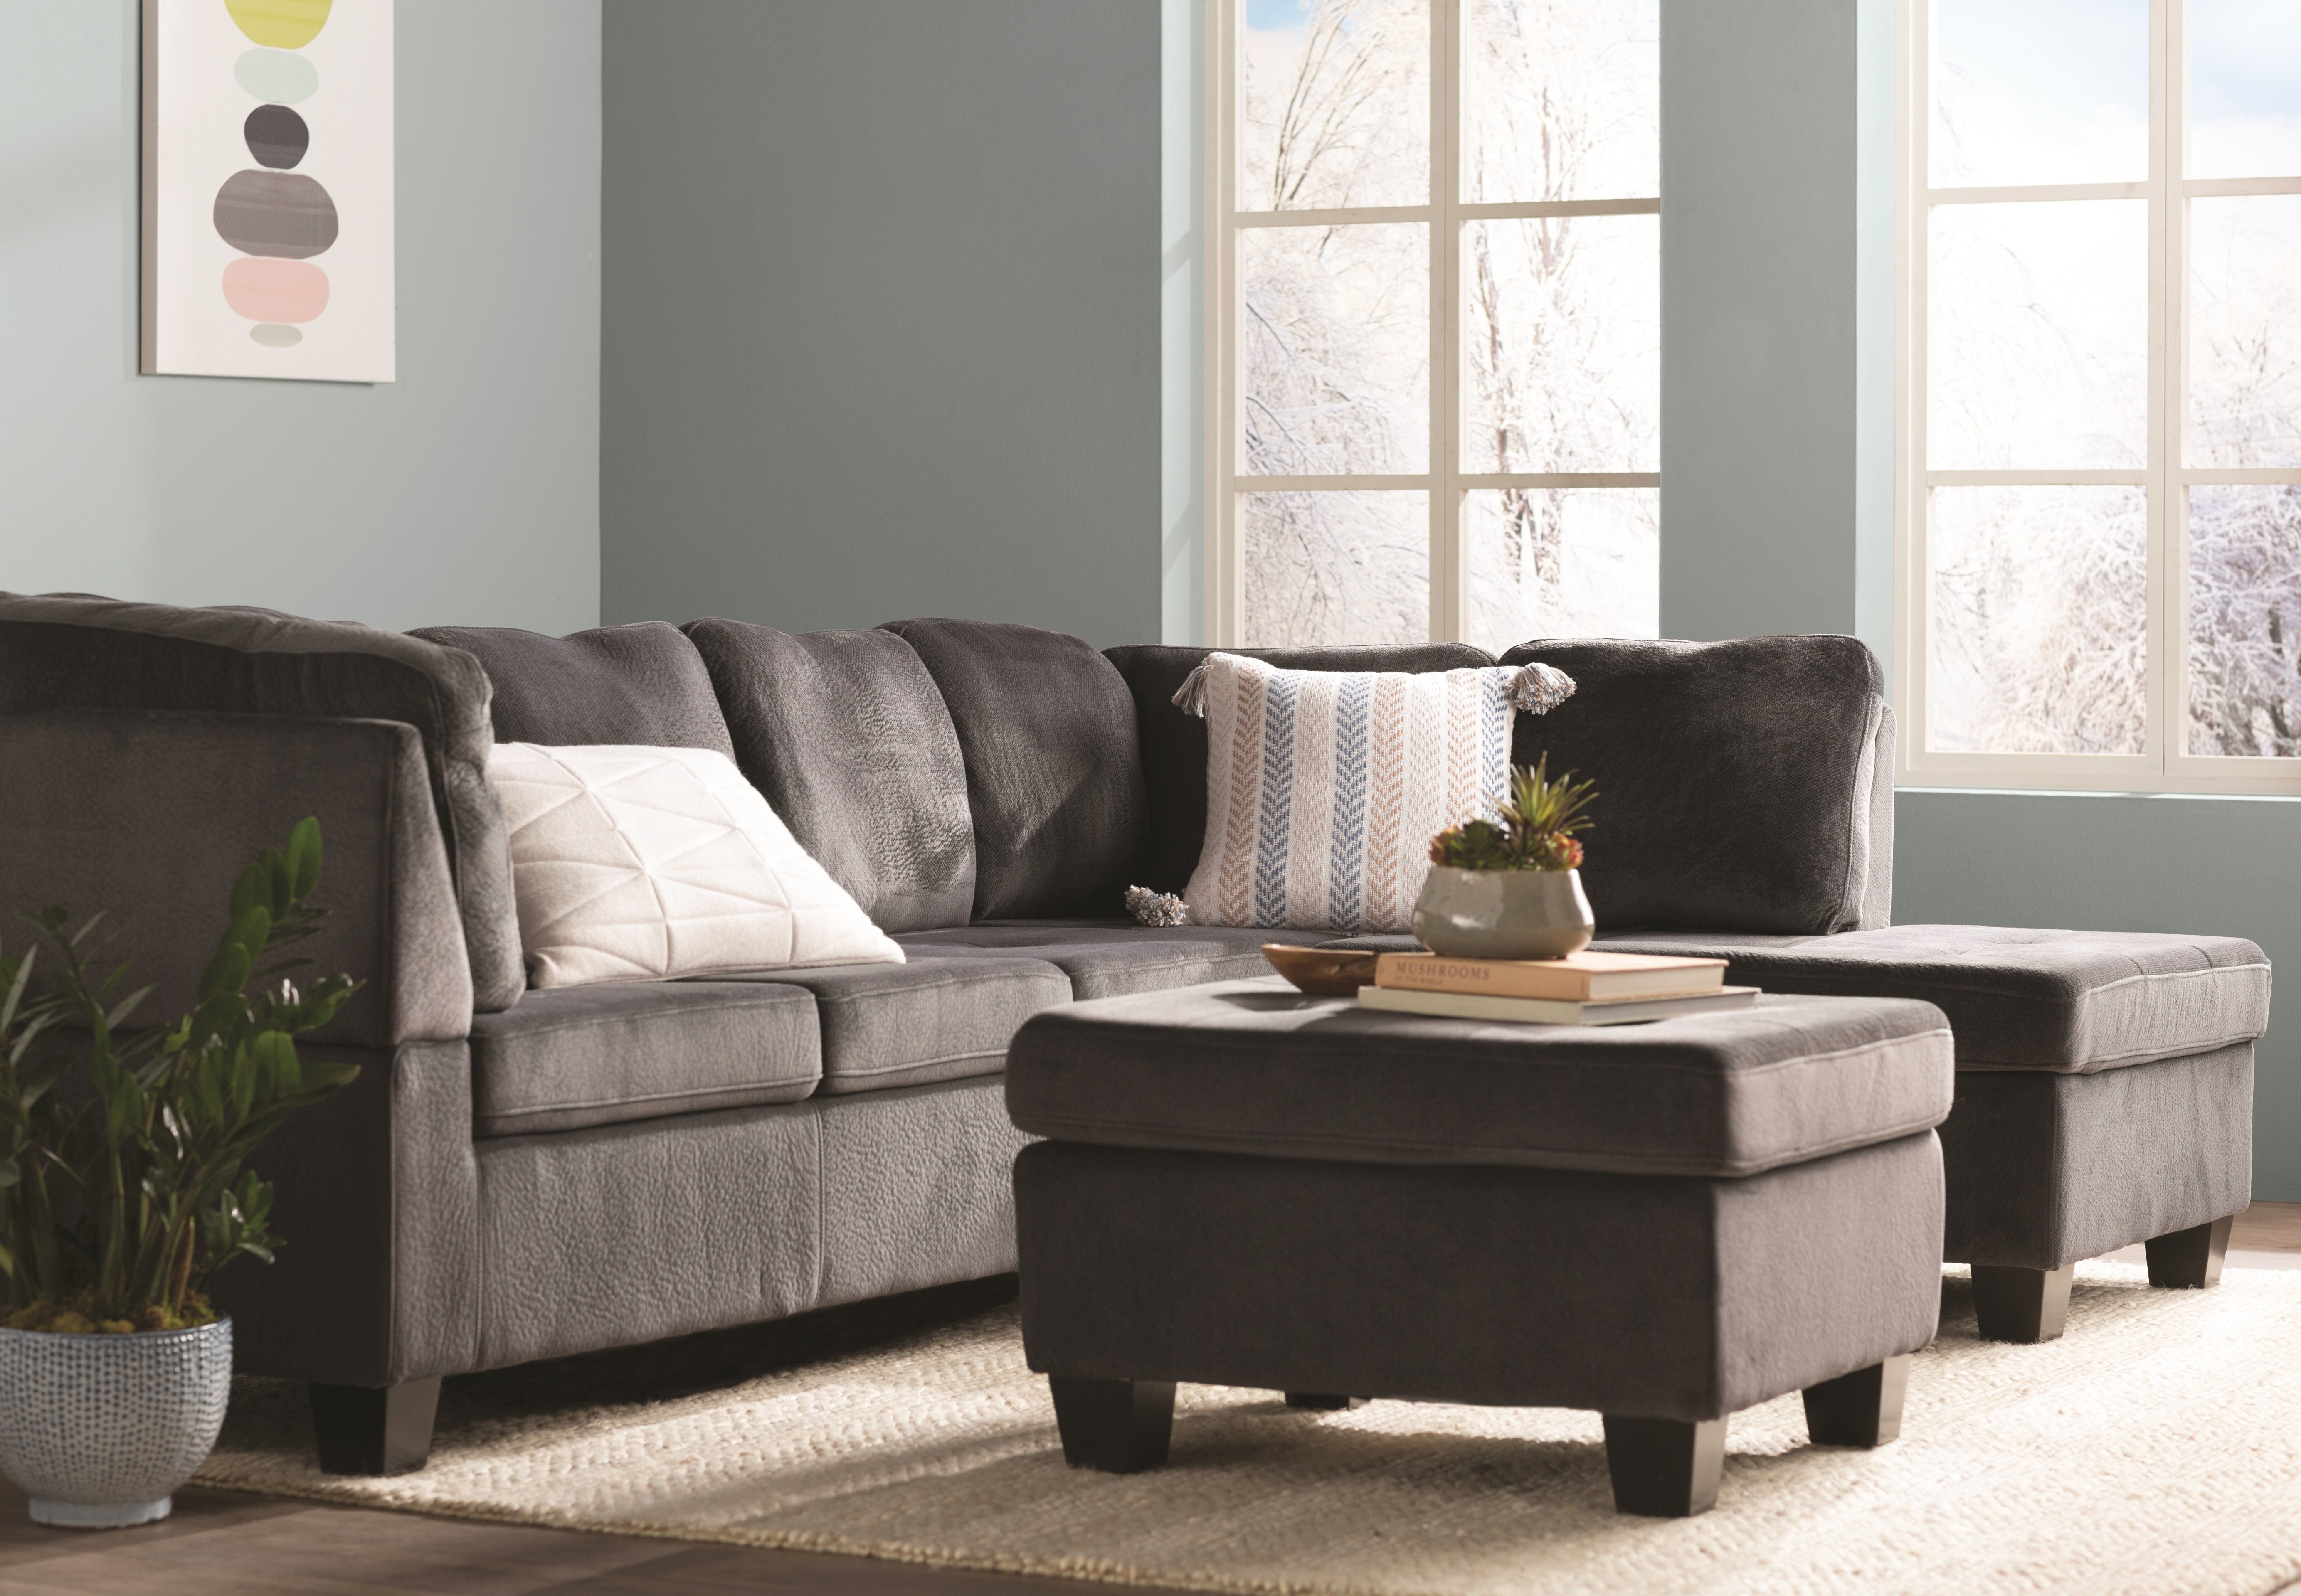 Red Barrel Studio Hardin Sectional With Ottoman & Reviews | Wayfair with regard to Harper Down 3 Piece Sectionals (Image 21 of 30)